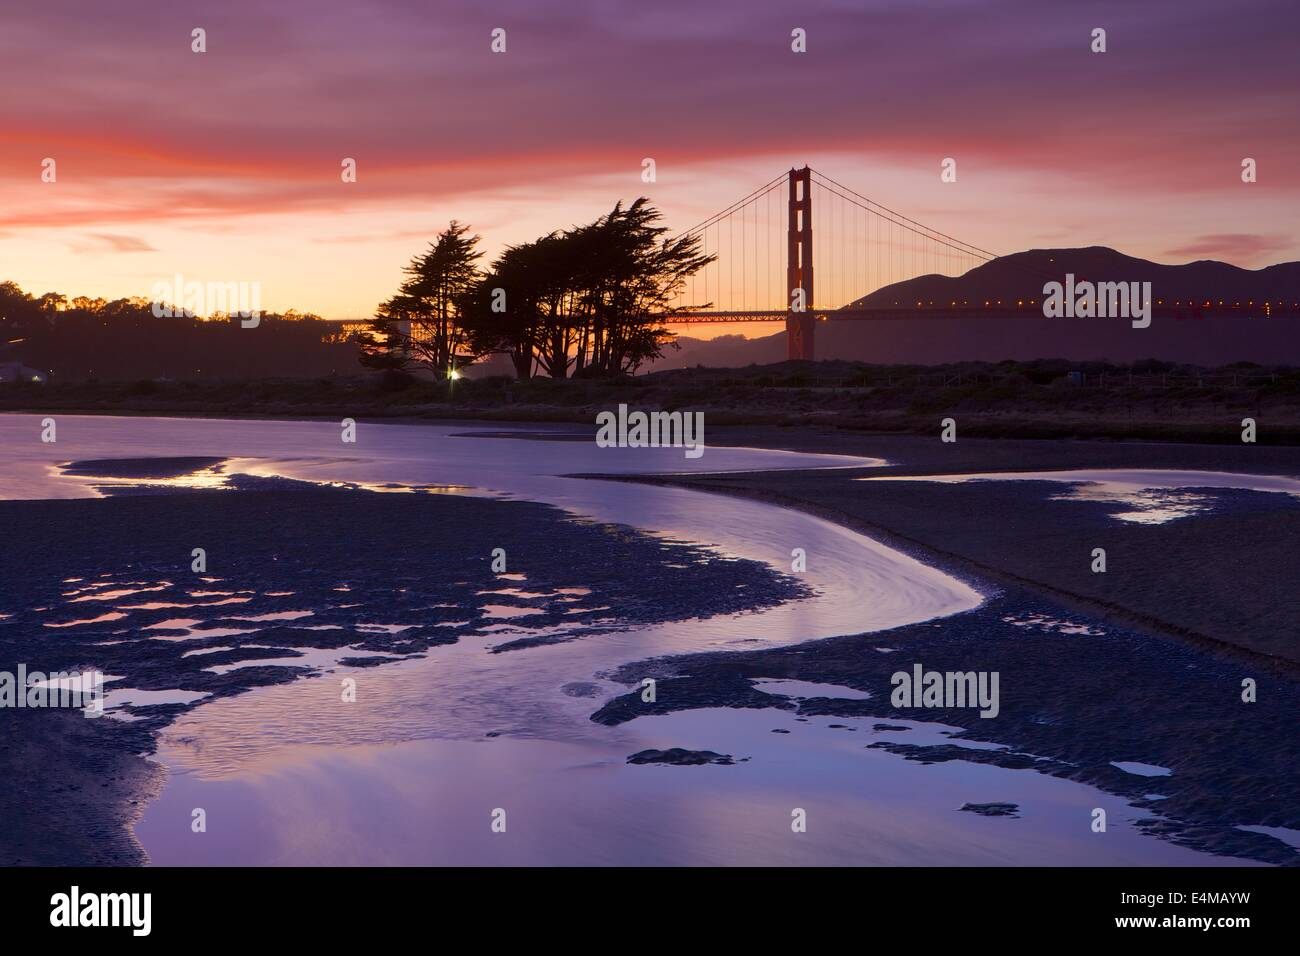 Beautiful sunset at Crissy Lagoon with the Golden Gate Bridge in the background - Stock Image